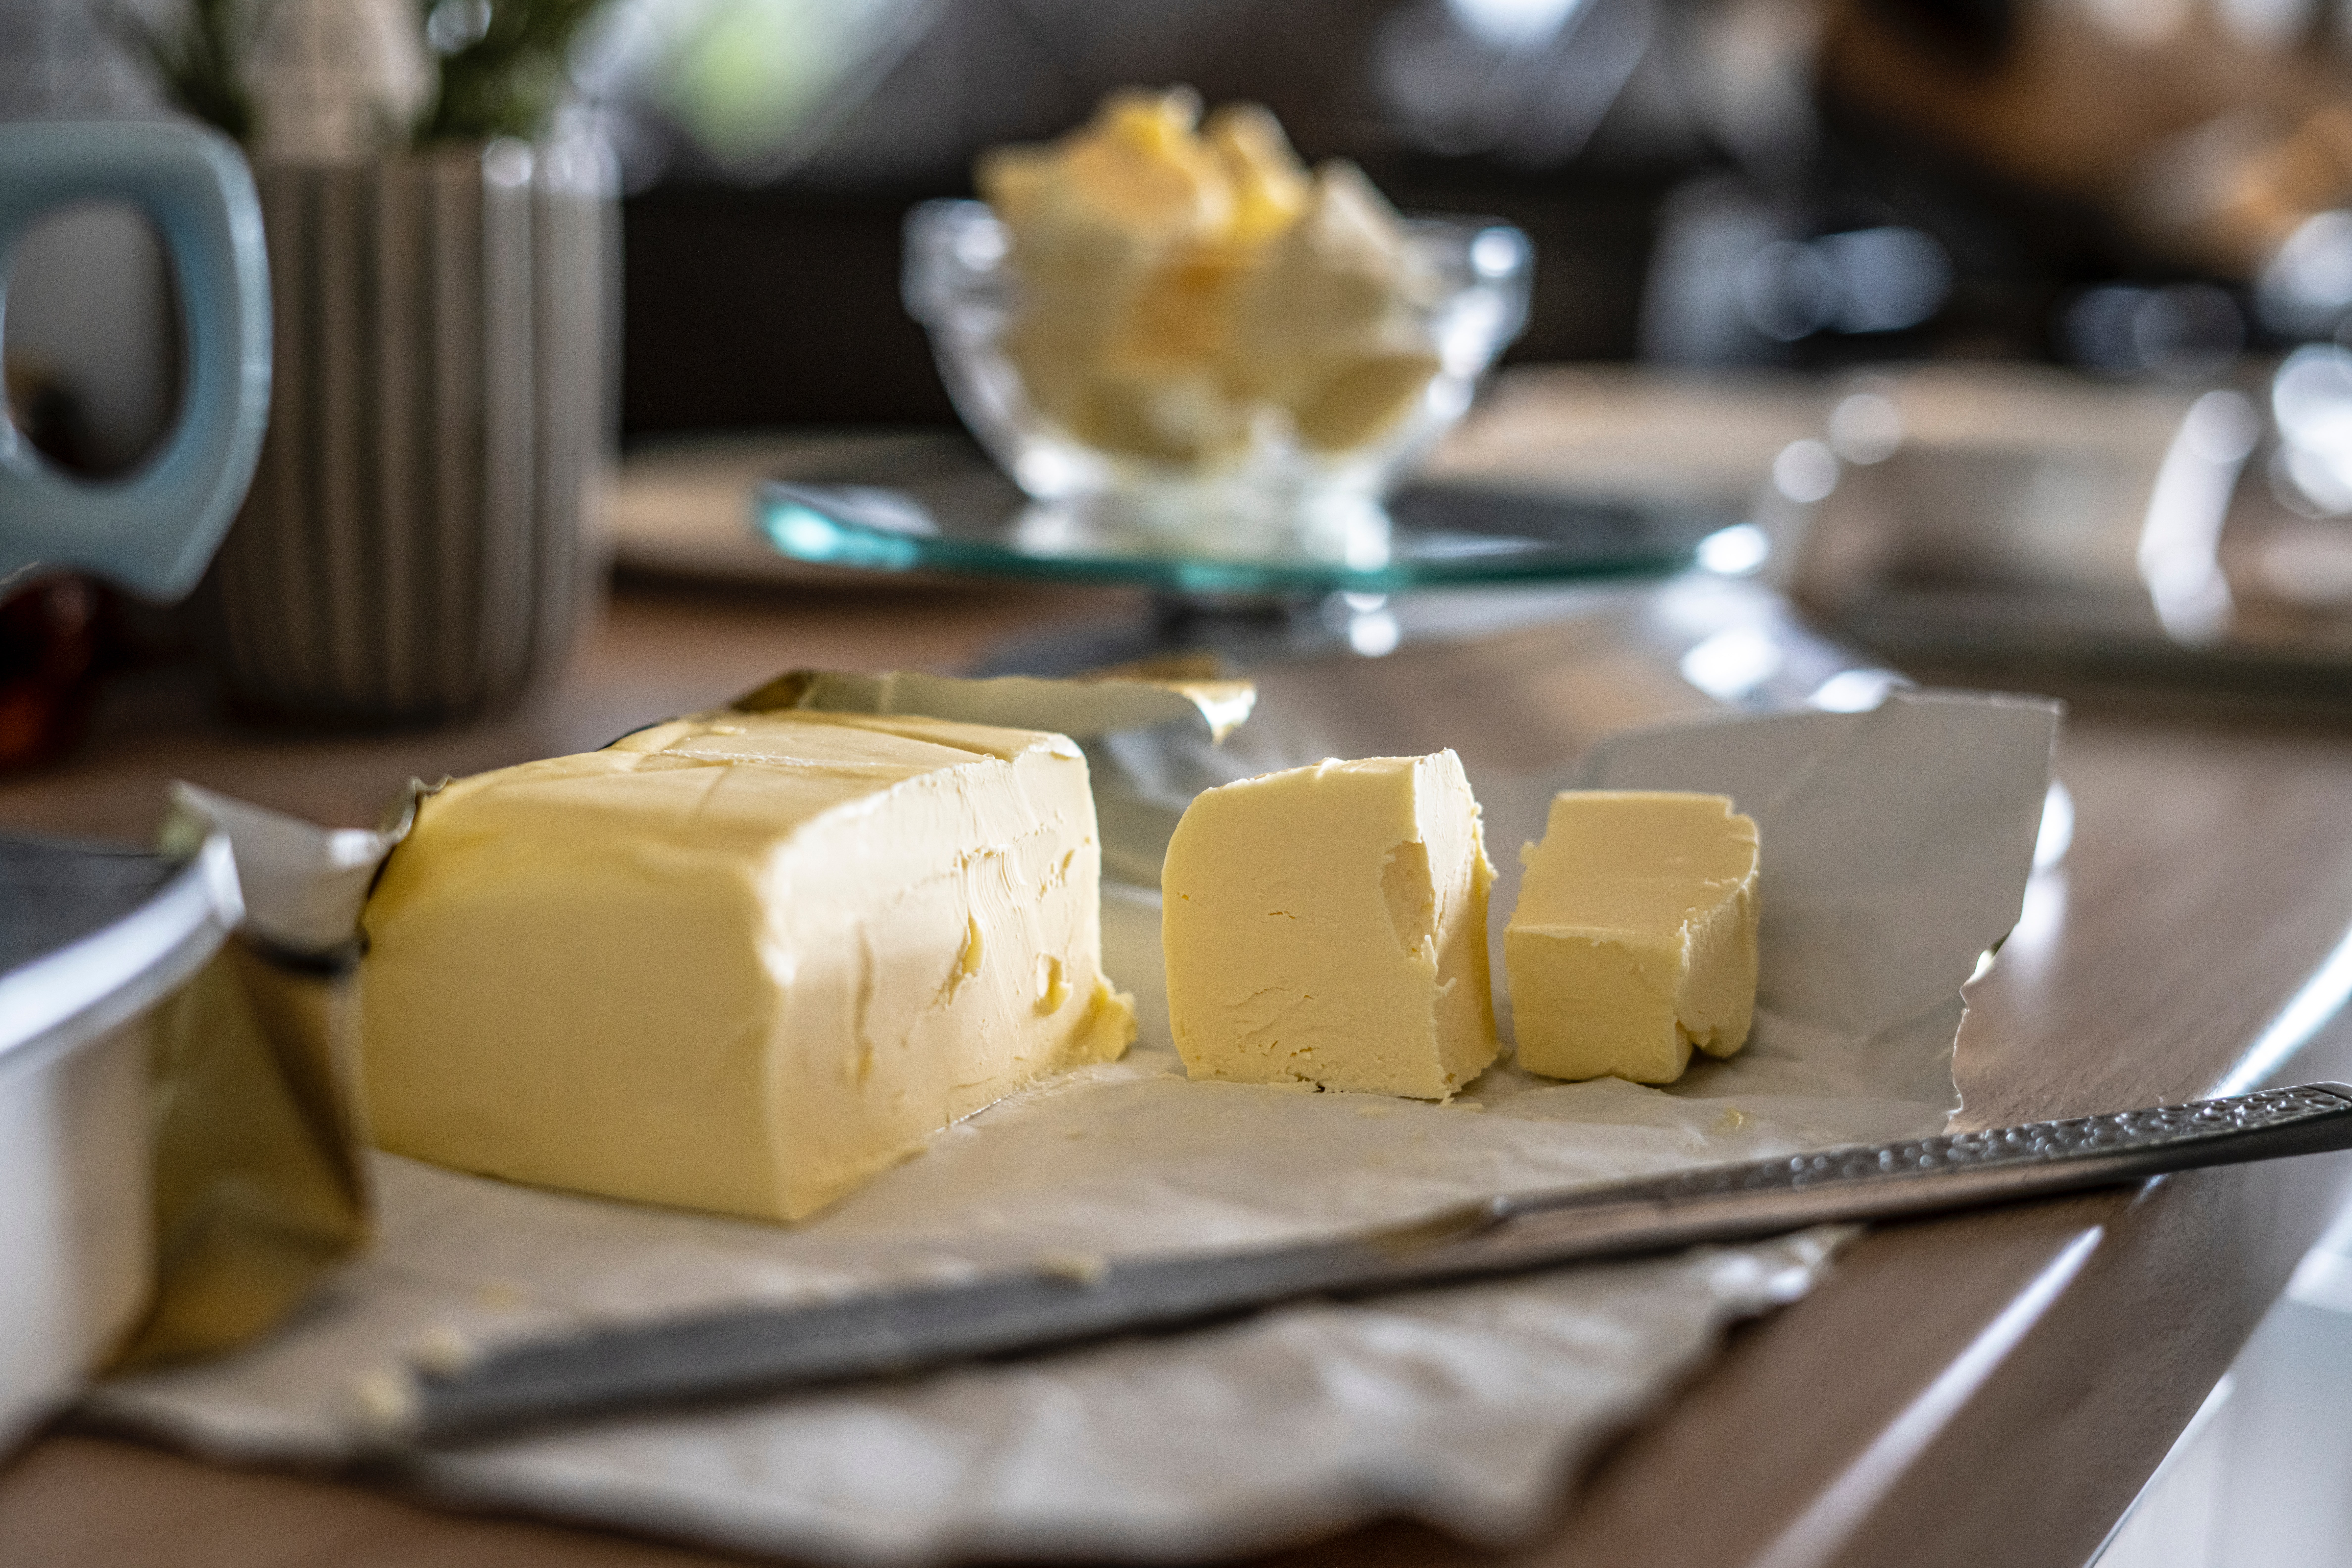 Benefits of Butter Consumption